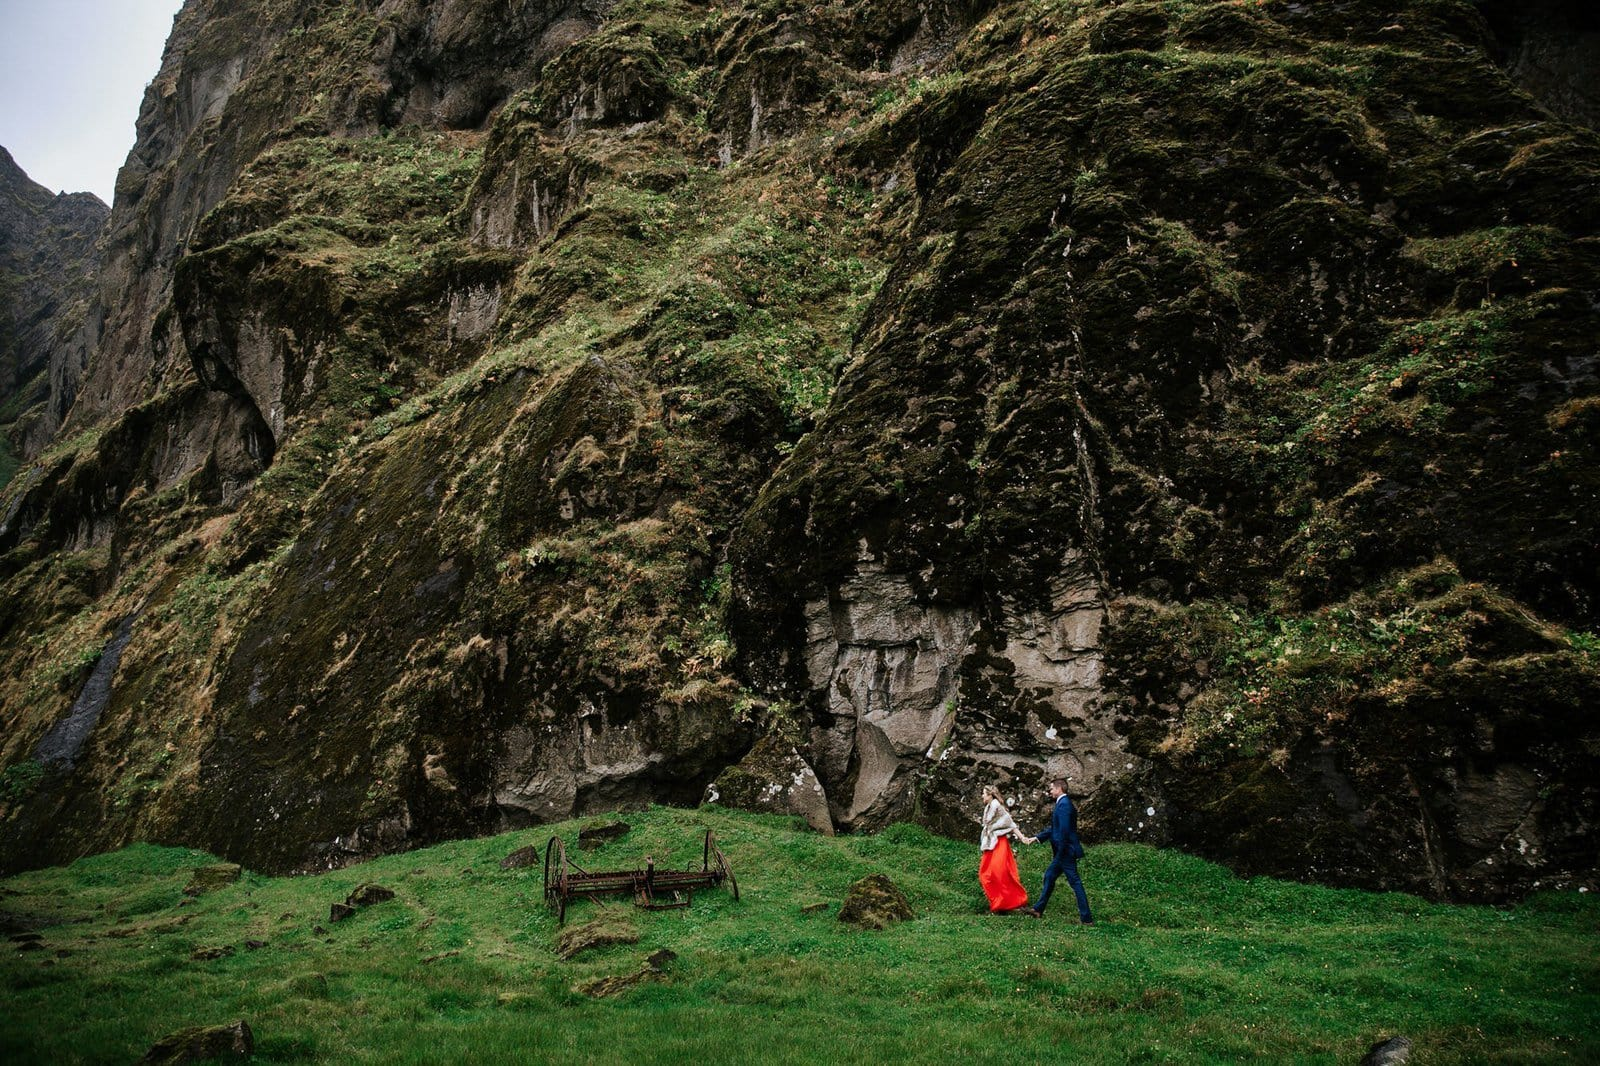 Elopement photography inspiration in Iceland.